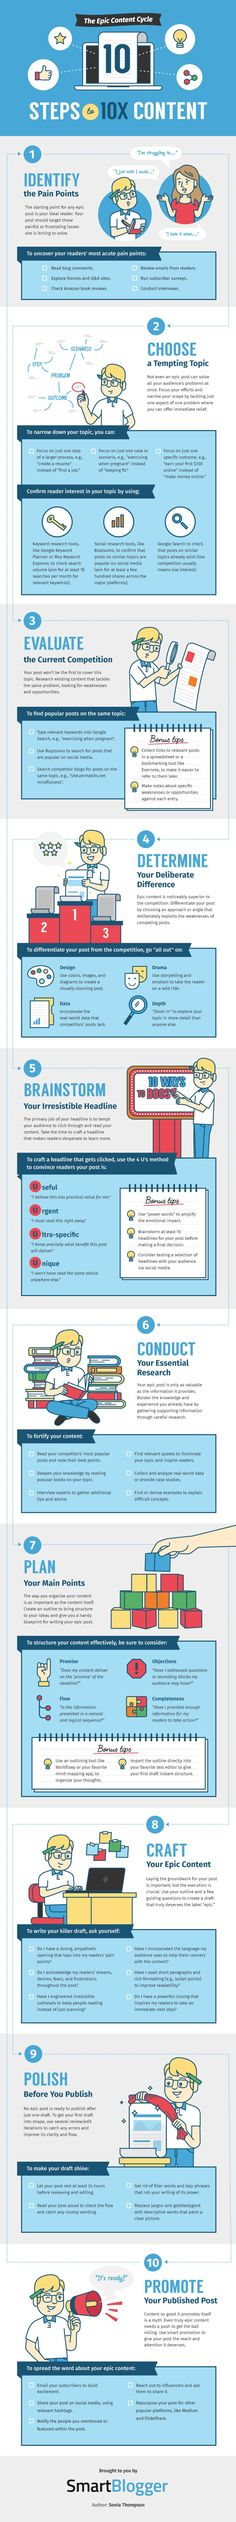 The Epic Content Cycle Infographic Marketing Trends, Marketing Tools, Internet Marketing, Online Marketing, Digital Marketing, Media Marketing, Inbound Marketing, Social Marketing, Facebook Marketing